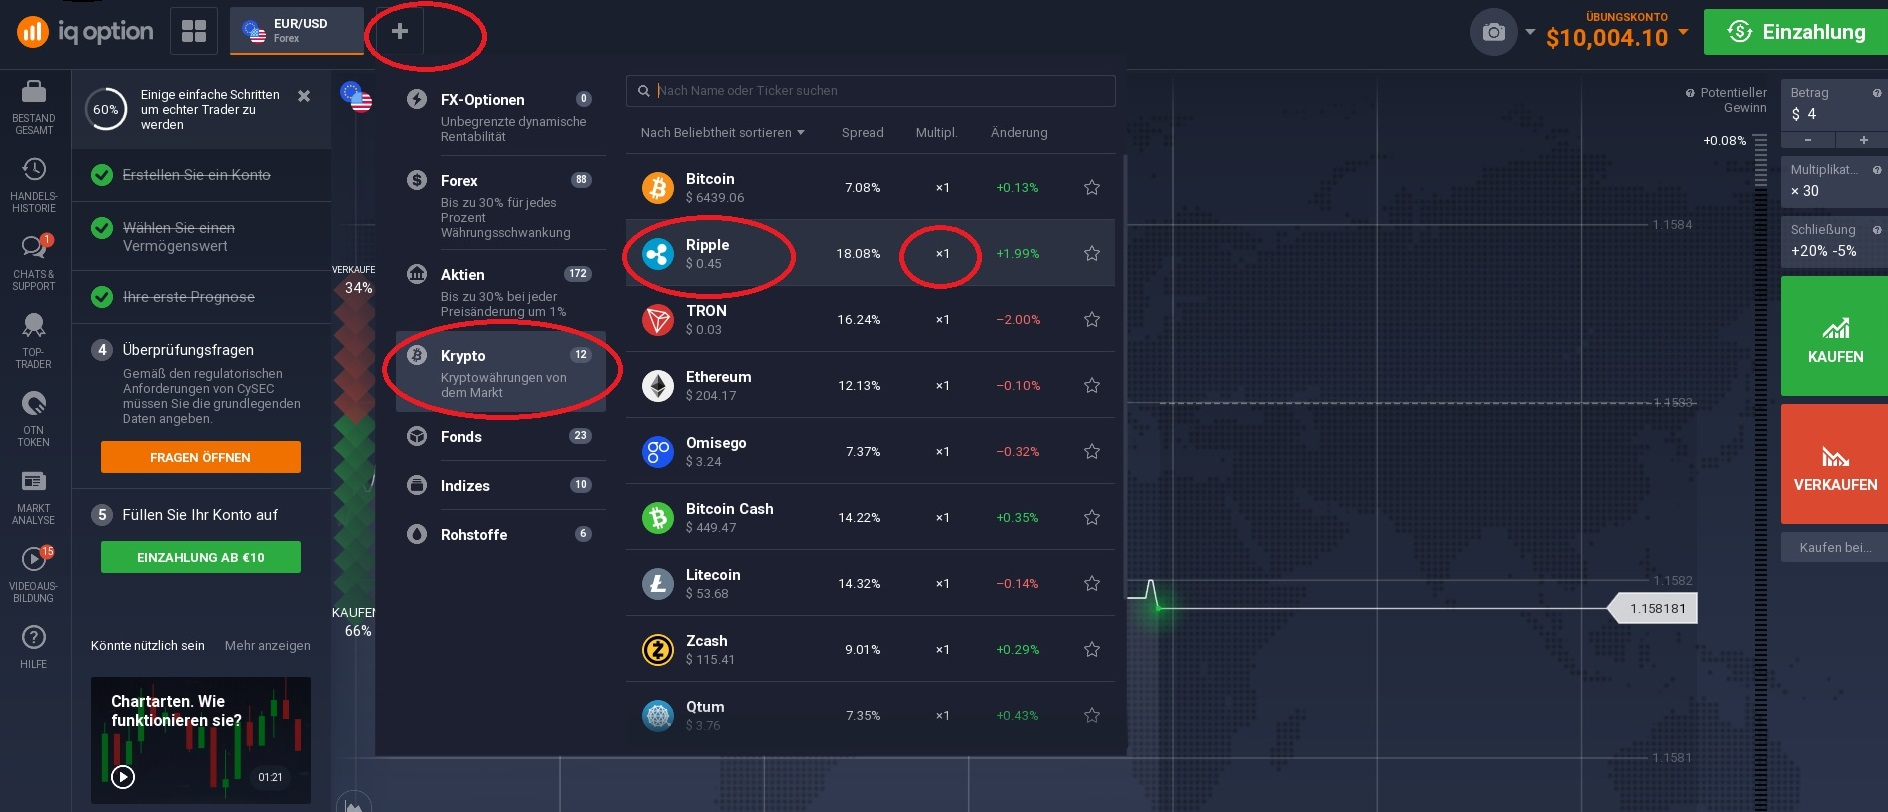 Ripple (XRP) kaufen: IQ Option Handelsplattform